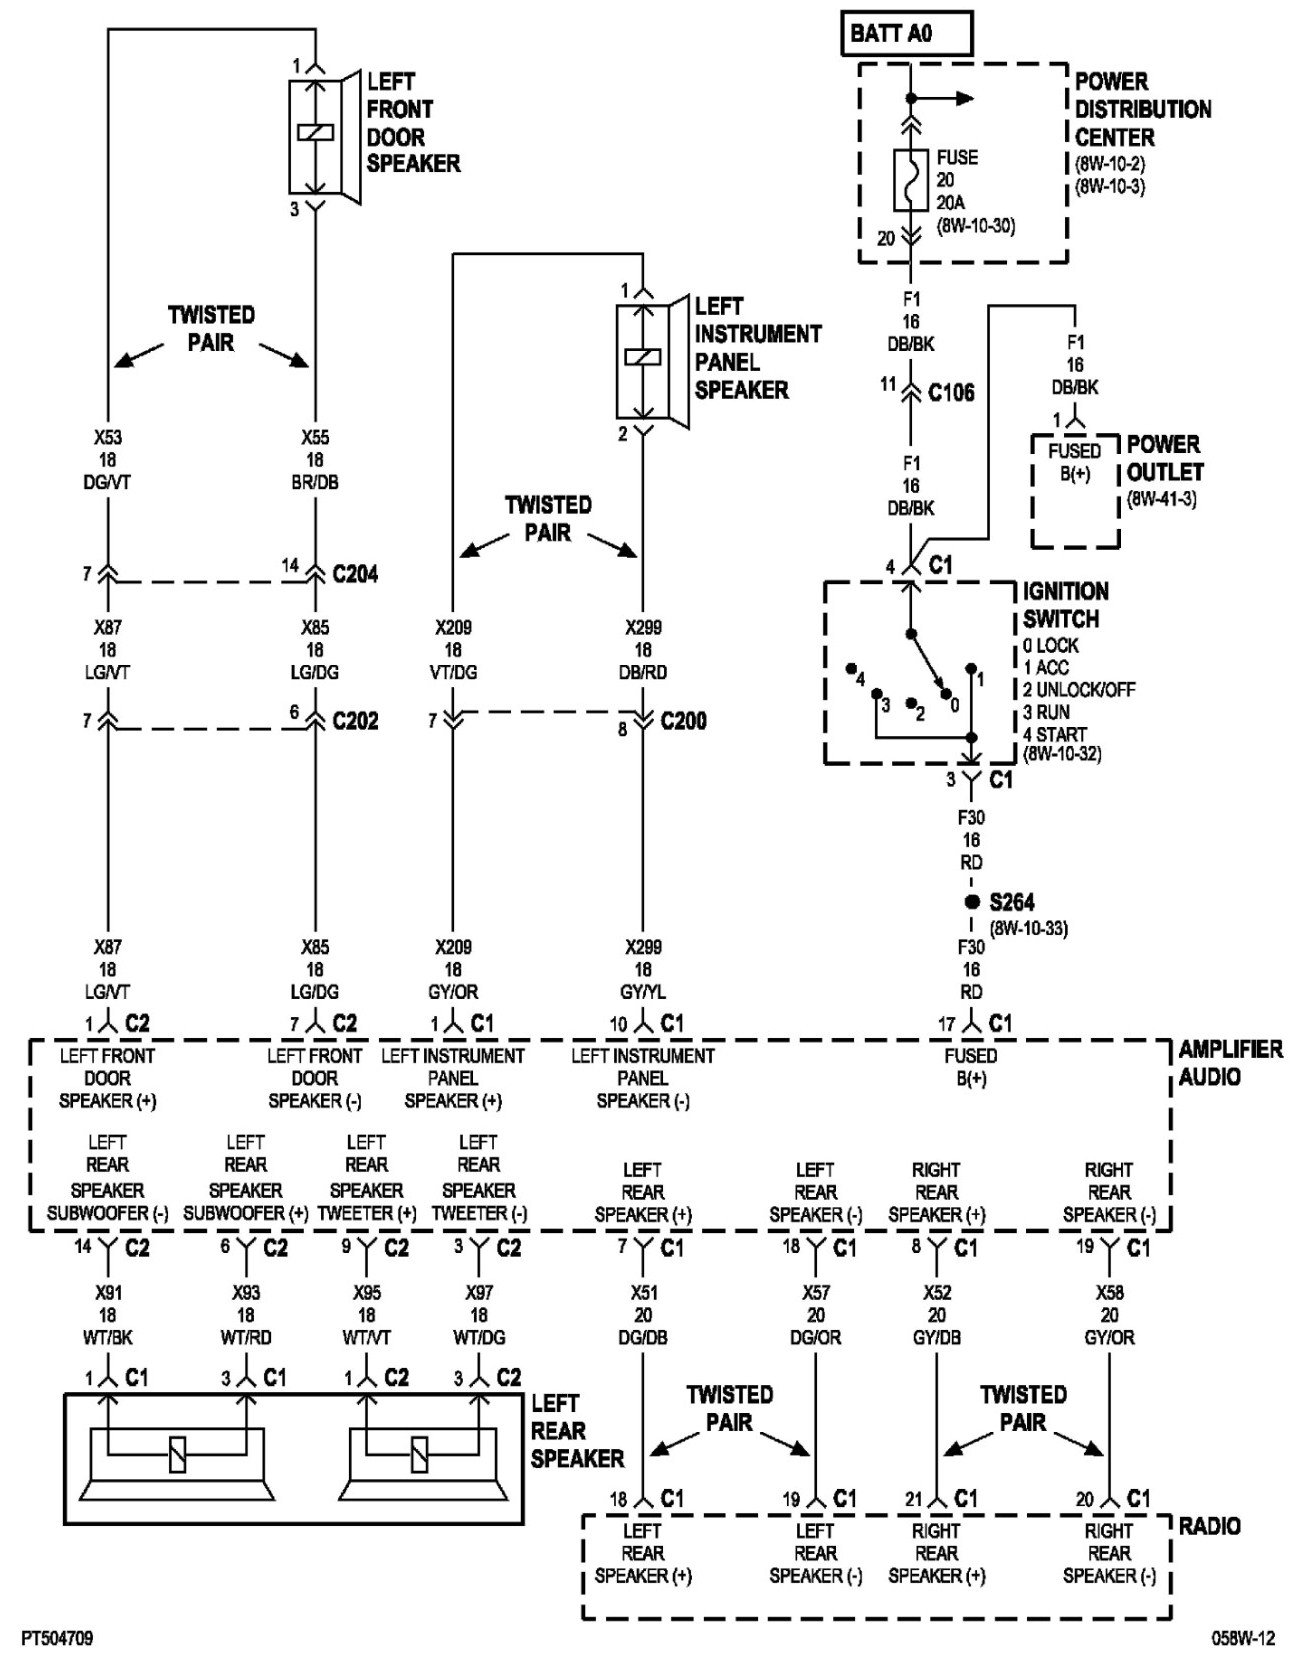 pt cruiser diagrams - wiring diagram page link-note-a -  link-note-a.granballodicomo.it  granballodicomo.it